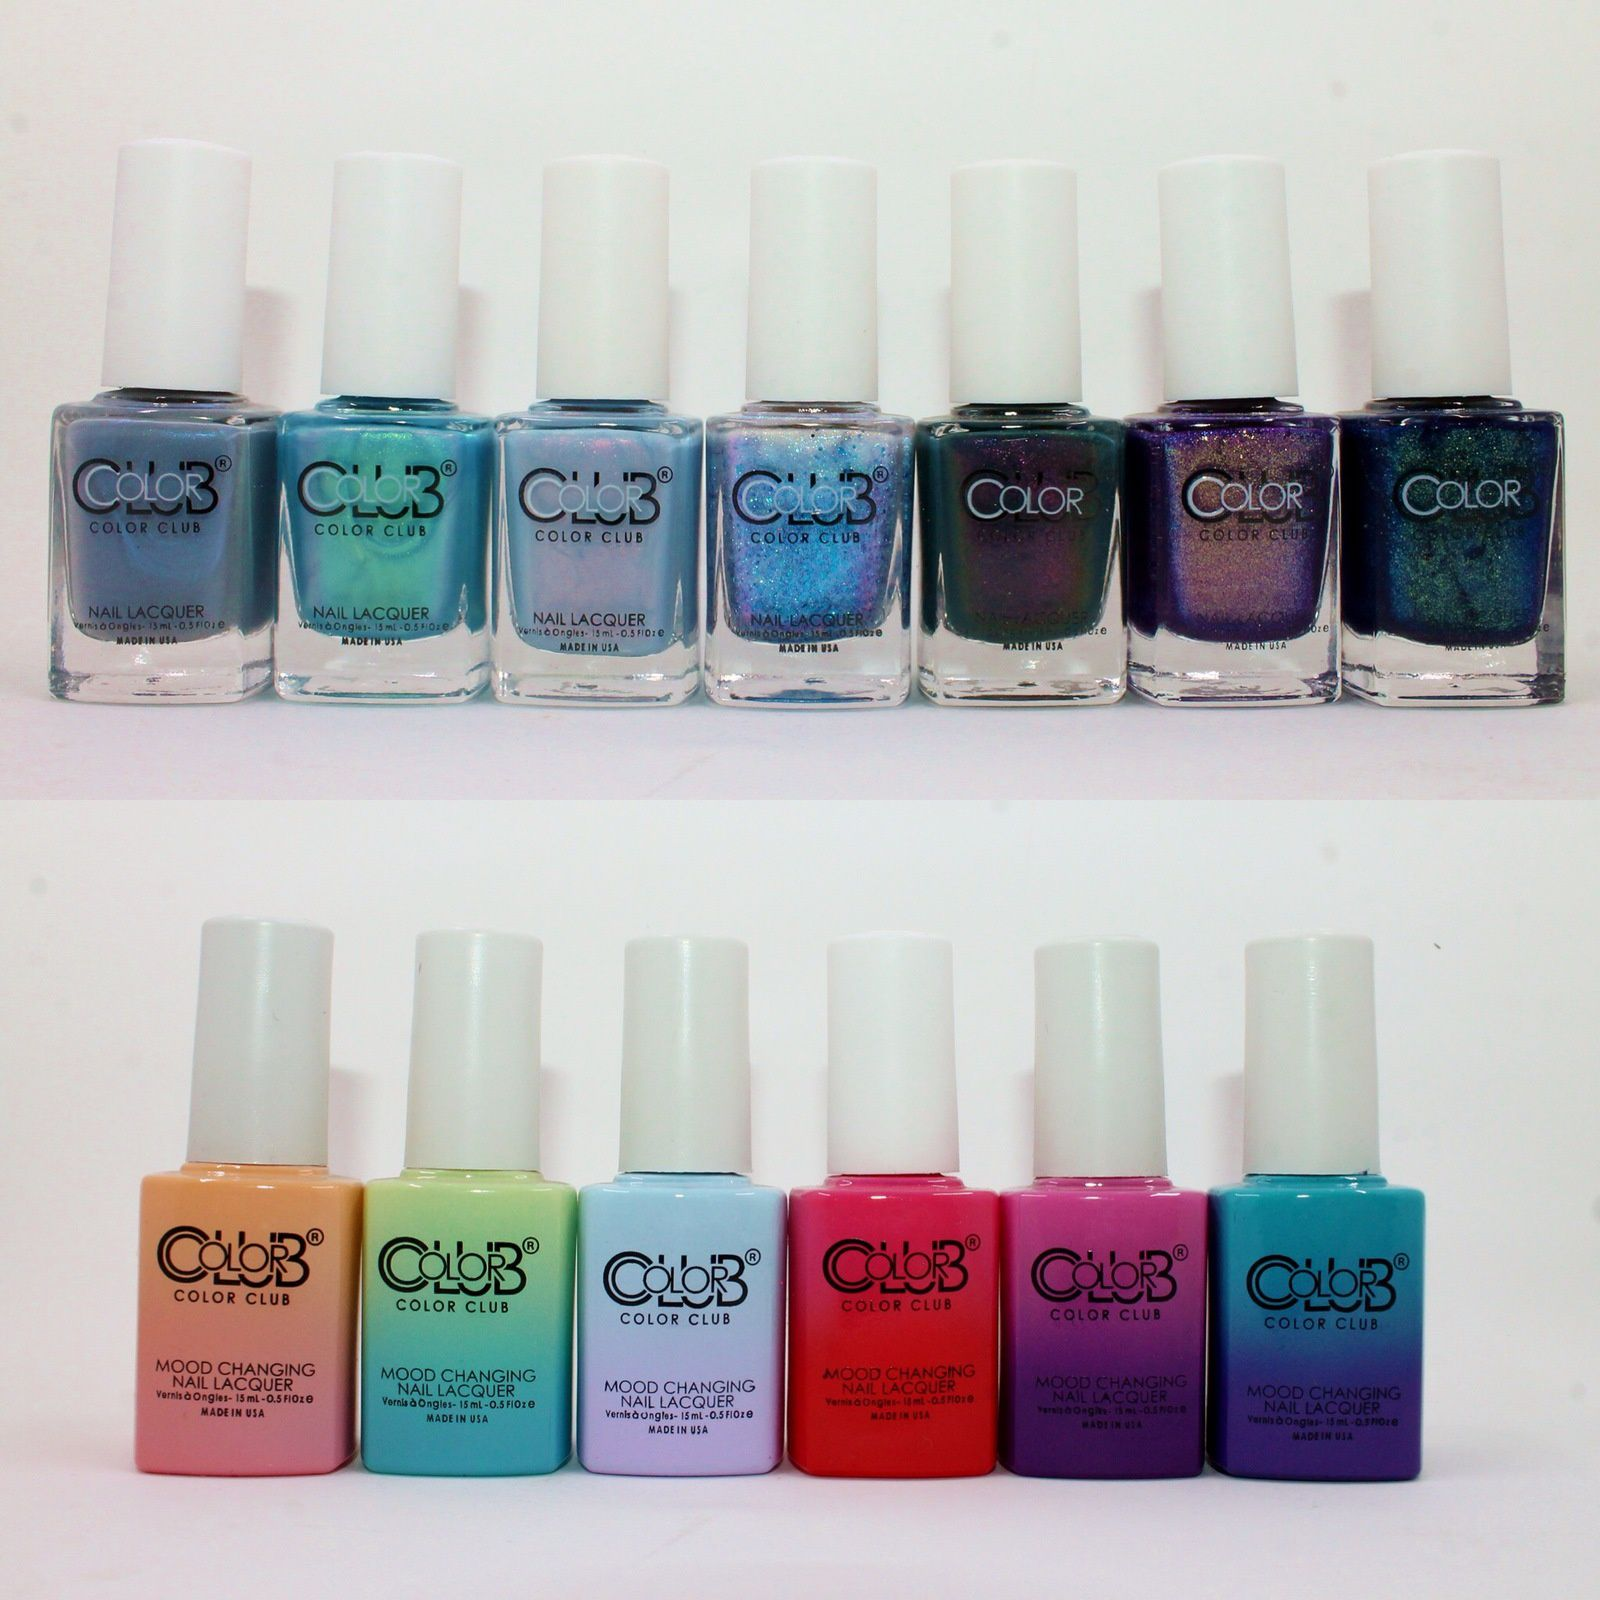 Color Club It's a Sign, Off the Charts, Element of Surprise, Constellation Prize, Across the Universe, Kiss my Astrology, Written in the Stars, Happy Go Lucky, Shine Theory, Blue Skies Ahead, Tankini, Feelin' Myself, Serene Green.